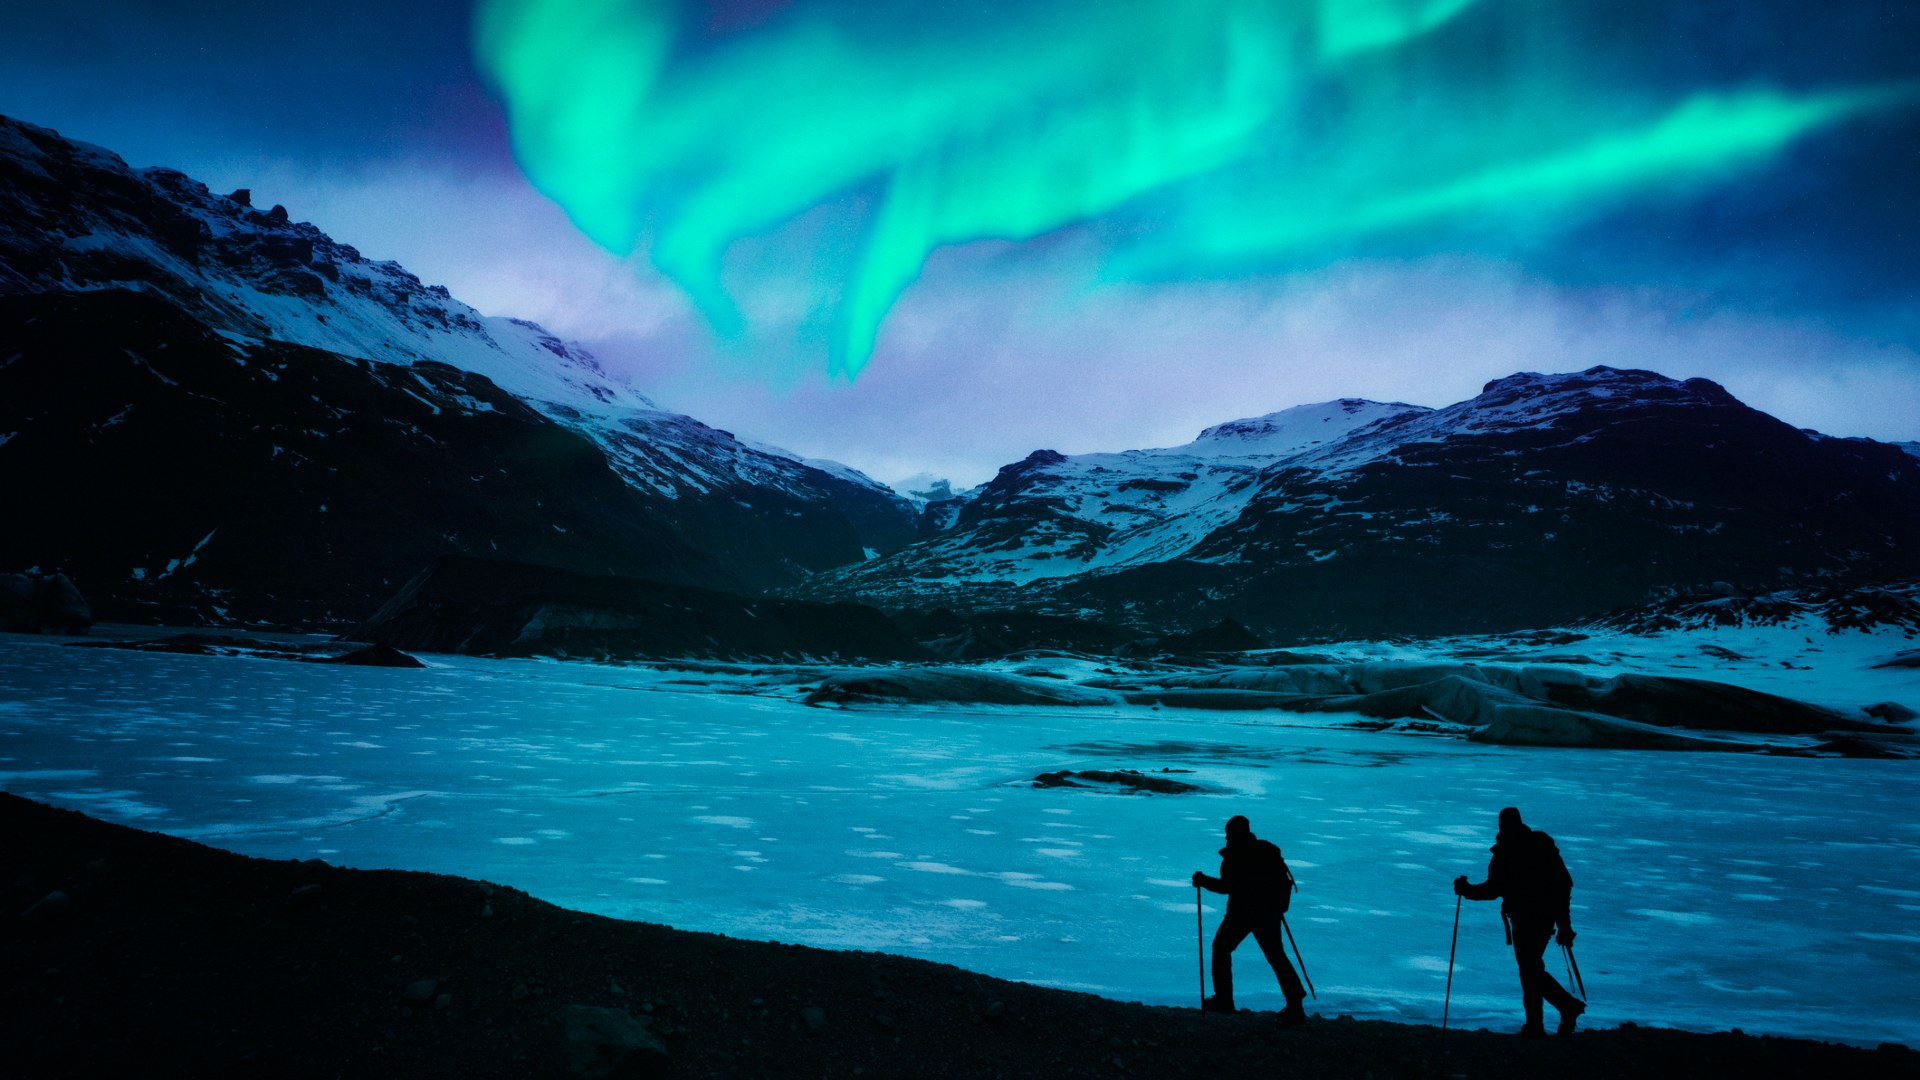 Hikers under the magical turquoise Northern Lights in Iceland.